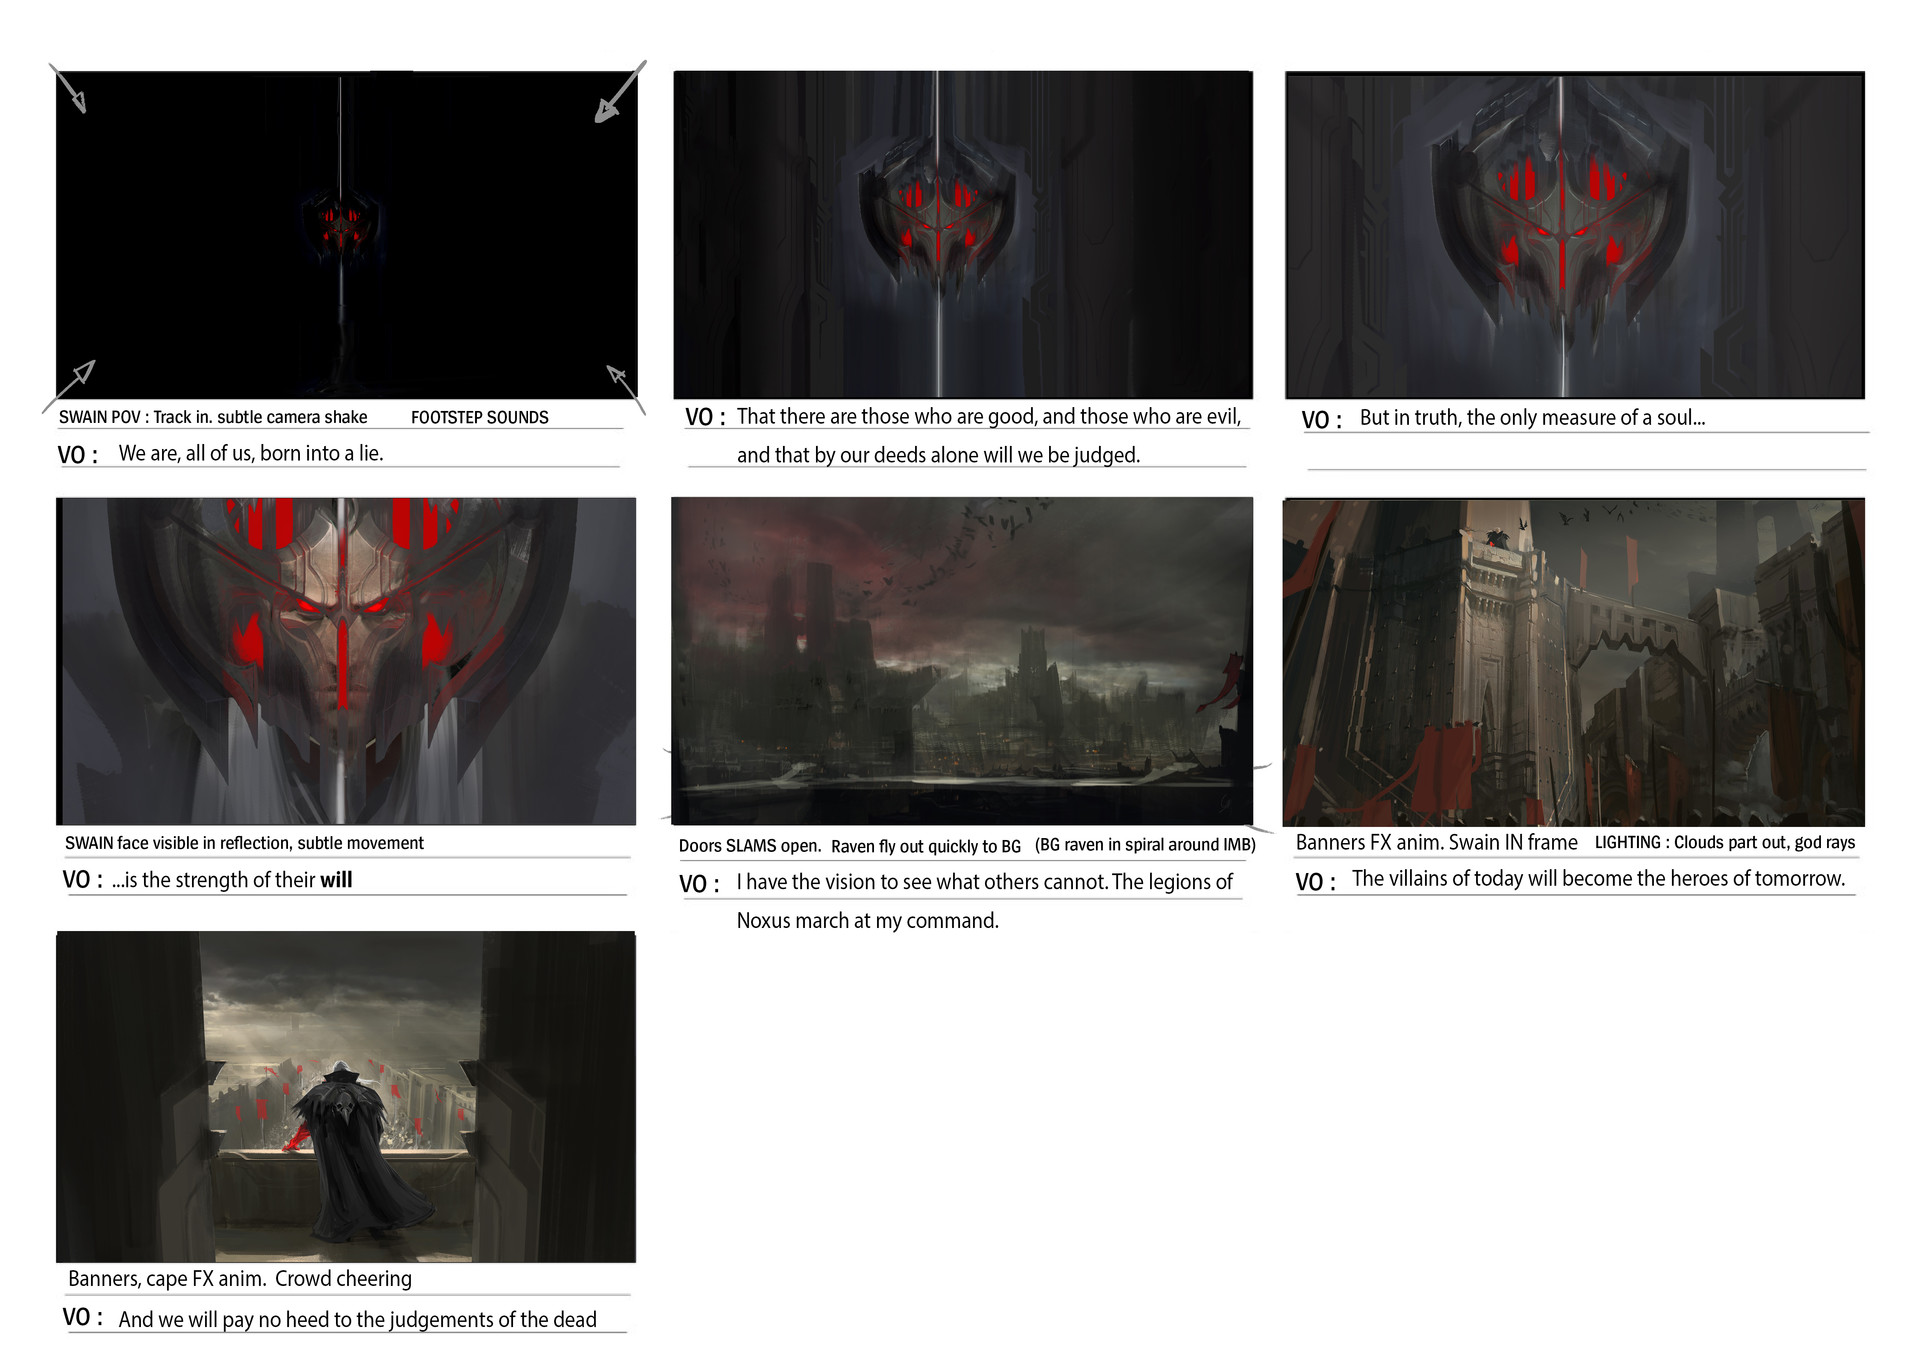 Efflam mercier storyboard v002 copy